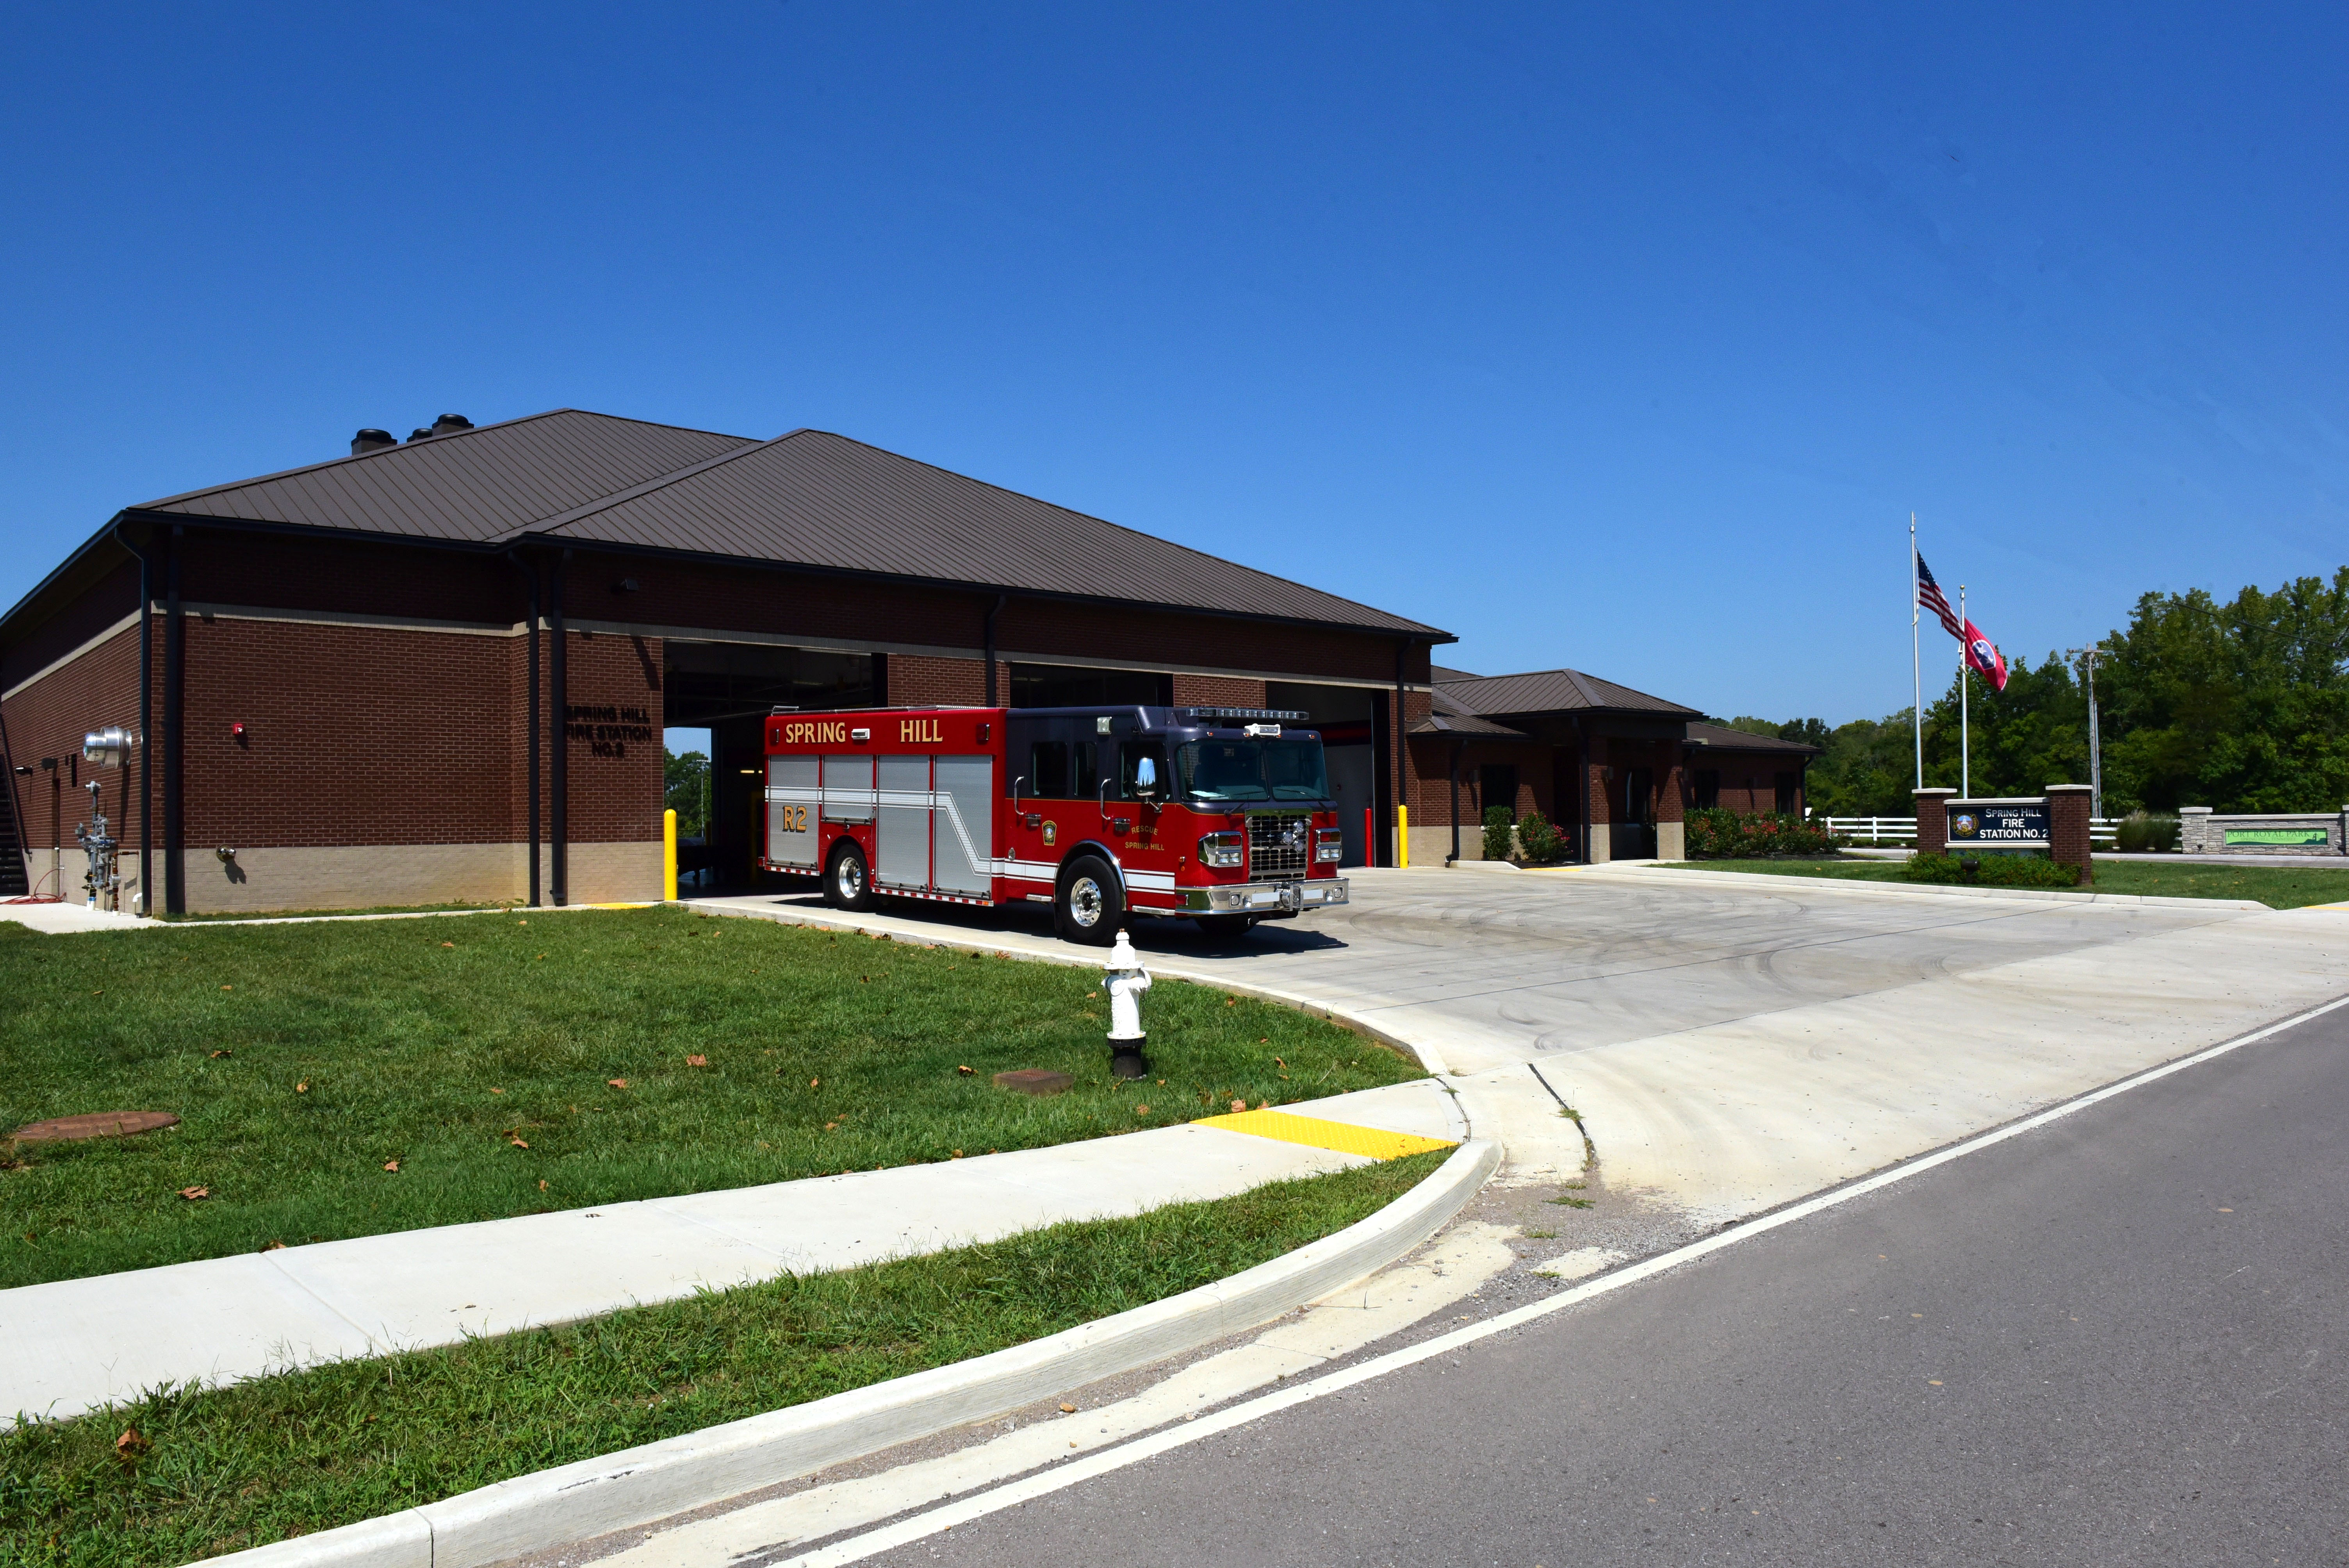 New Spring Hill Fire Station 2 opened in May 2015